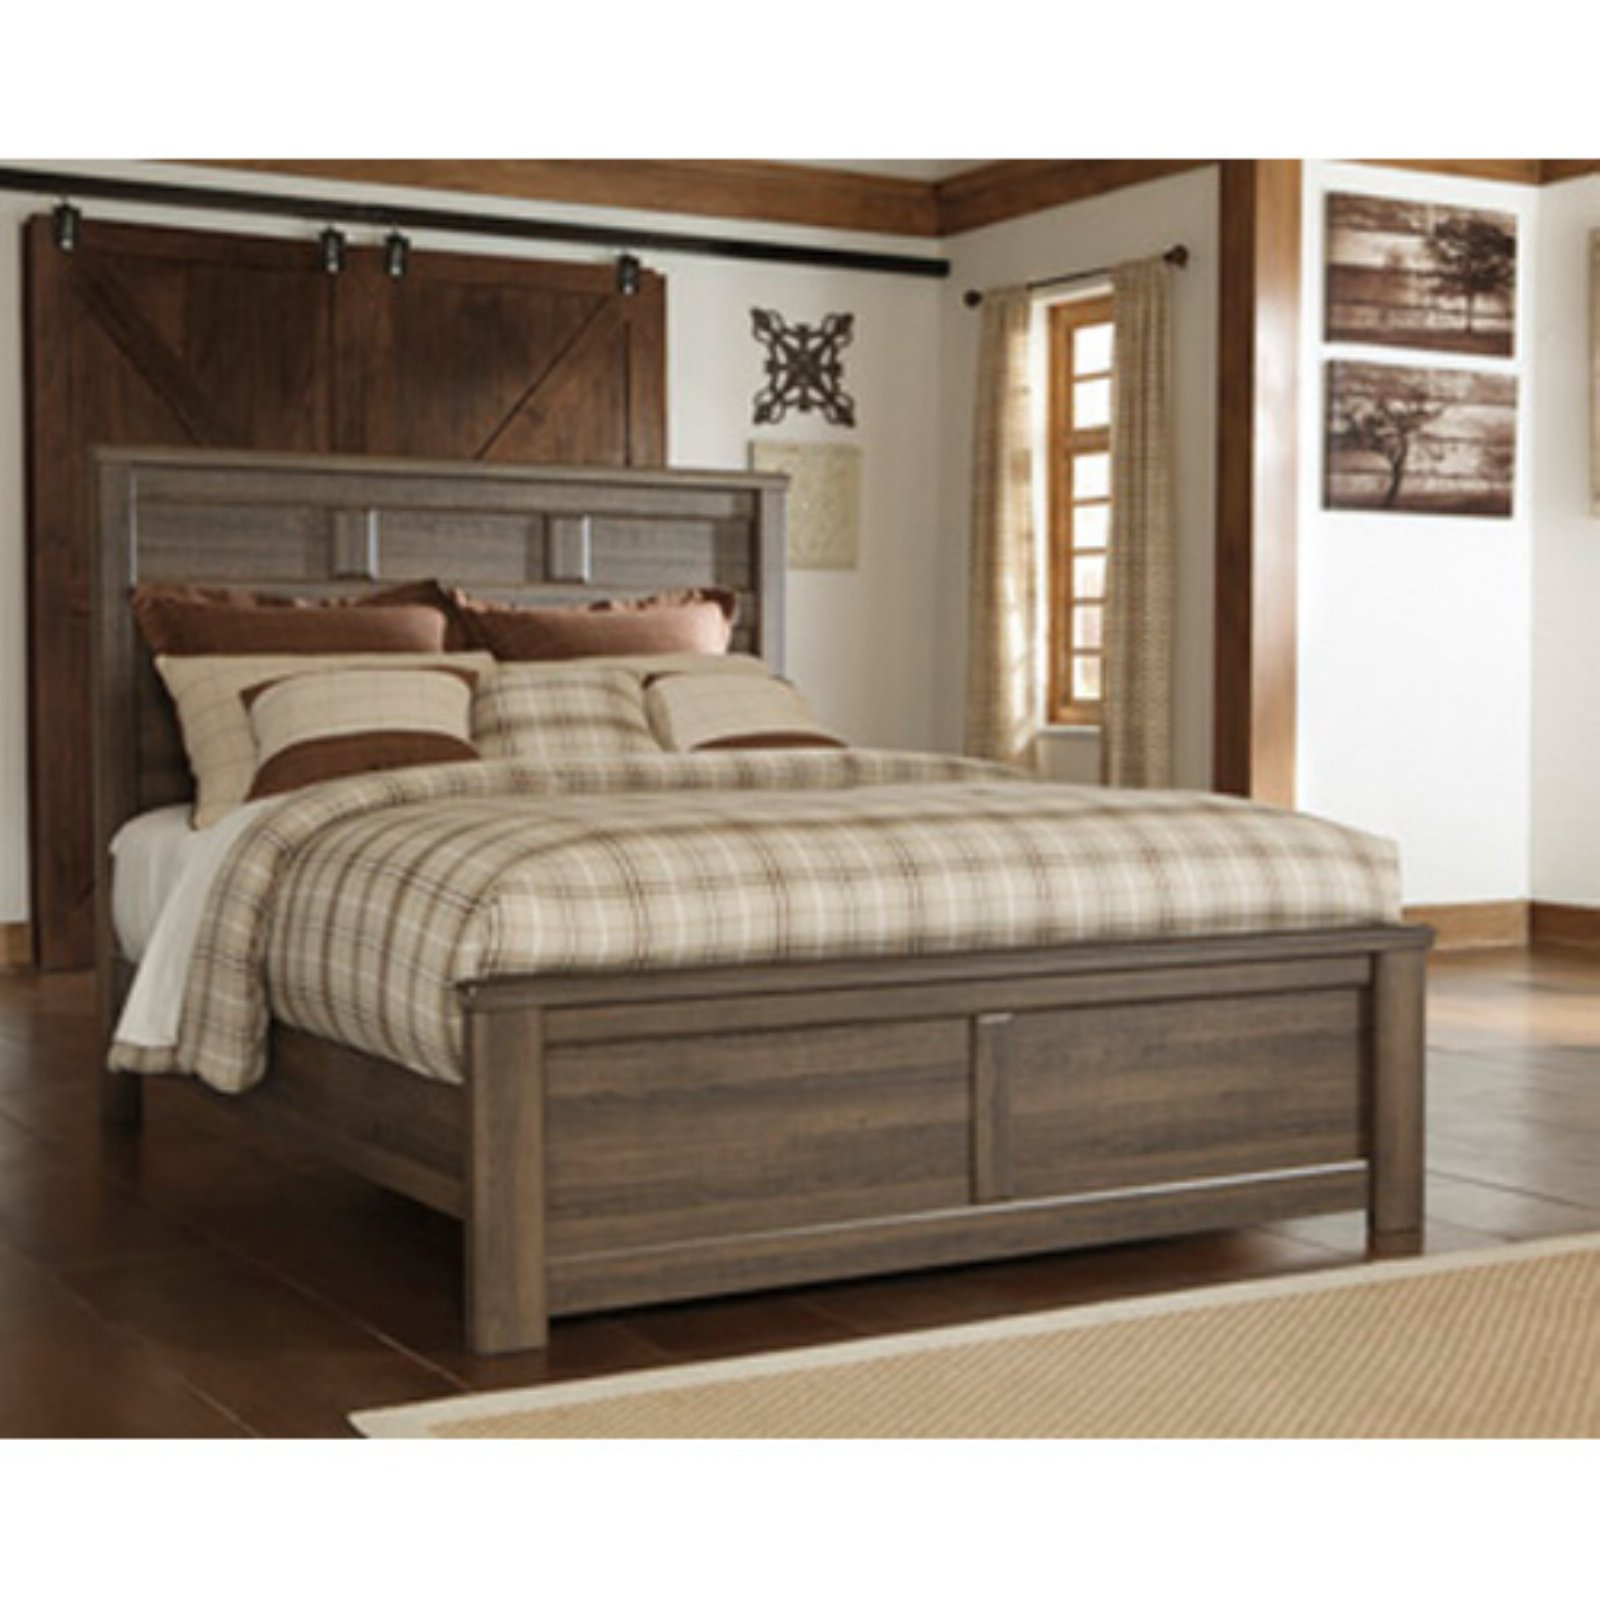 Signature Design by Ashley Juararo Panel Bed